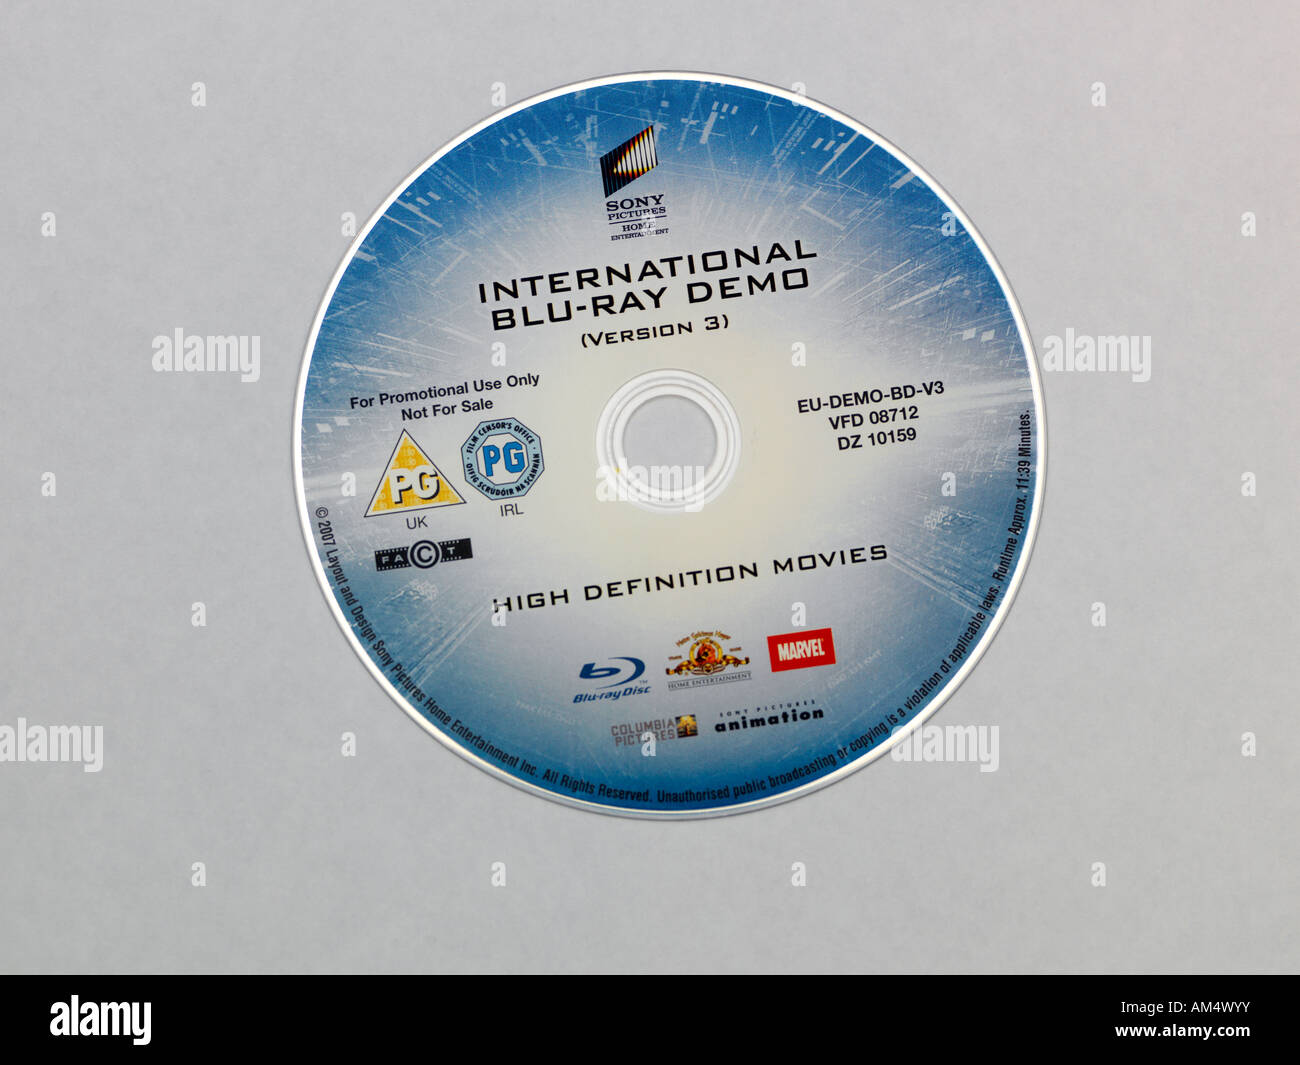 Blu Ray Demo Disc Showing the BD Label - Stock Image